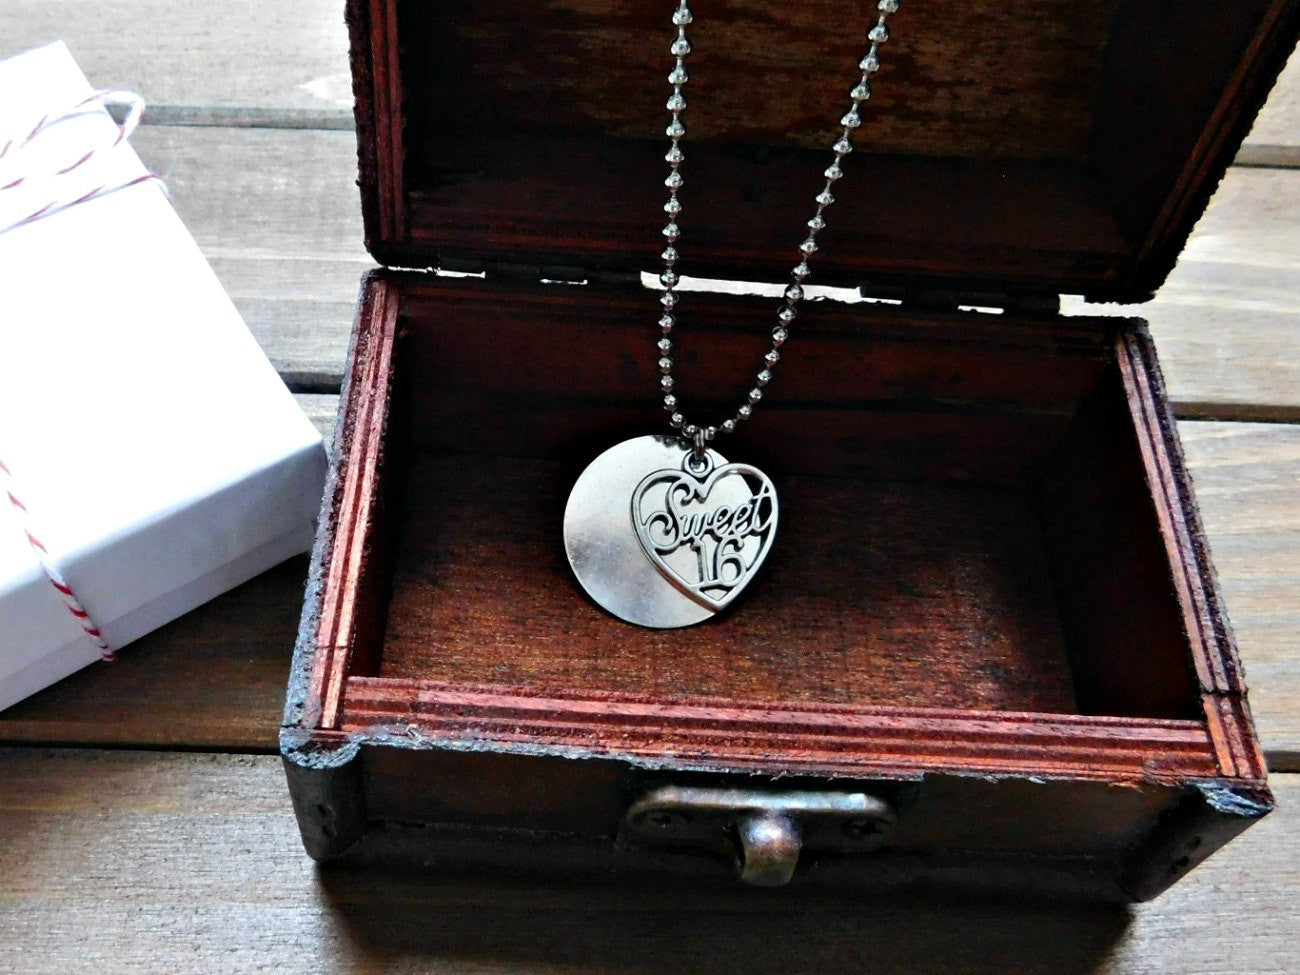 Sweet 16 Necklace Sweet Sixteen Charm Teen Gift Engraved Necklace Heart Charm Necklace Sweet 16 Birthday Gift Boho Layering Necklace Silver